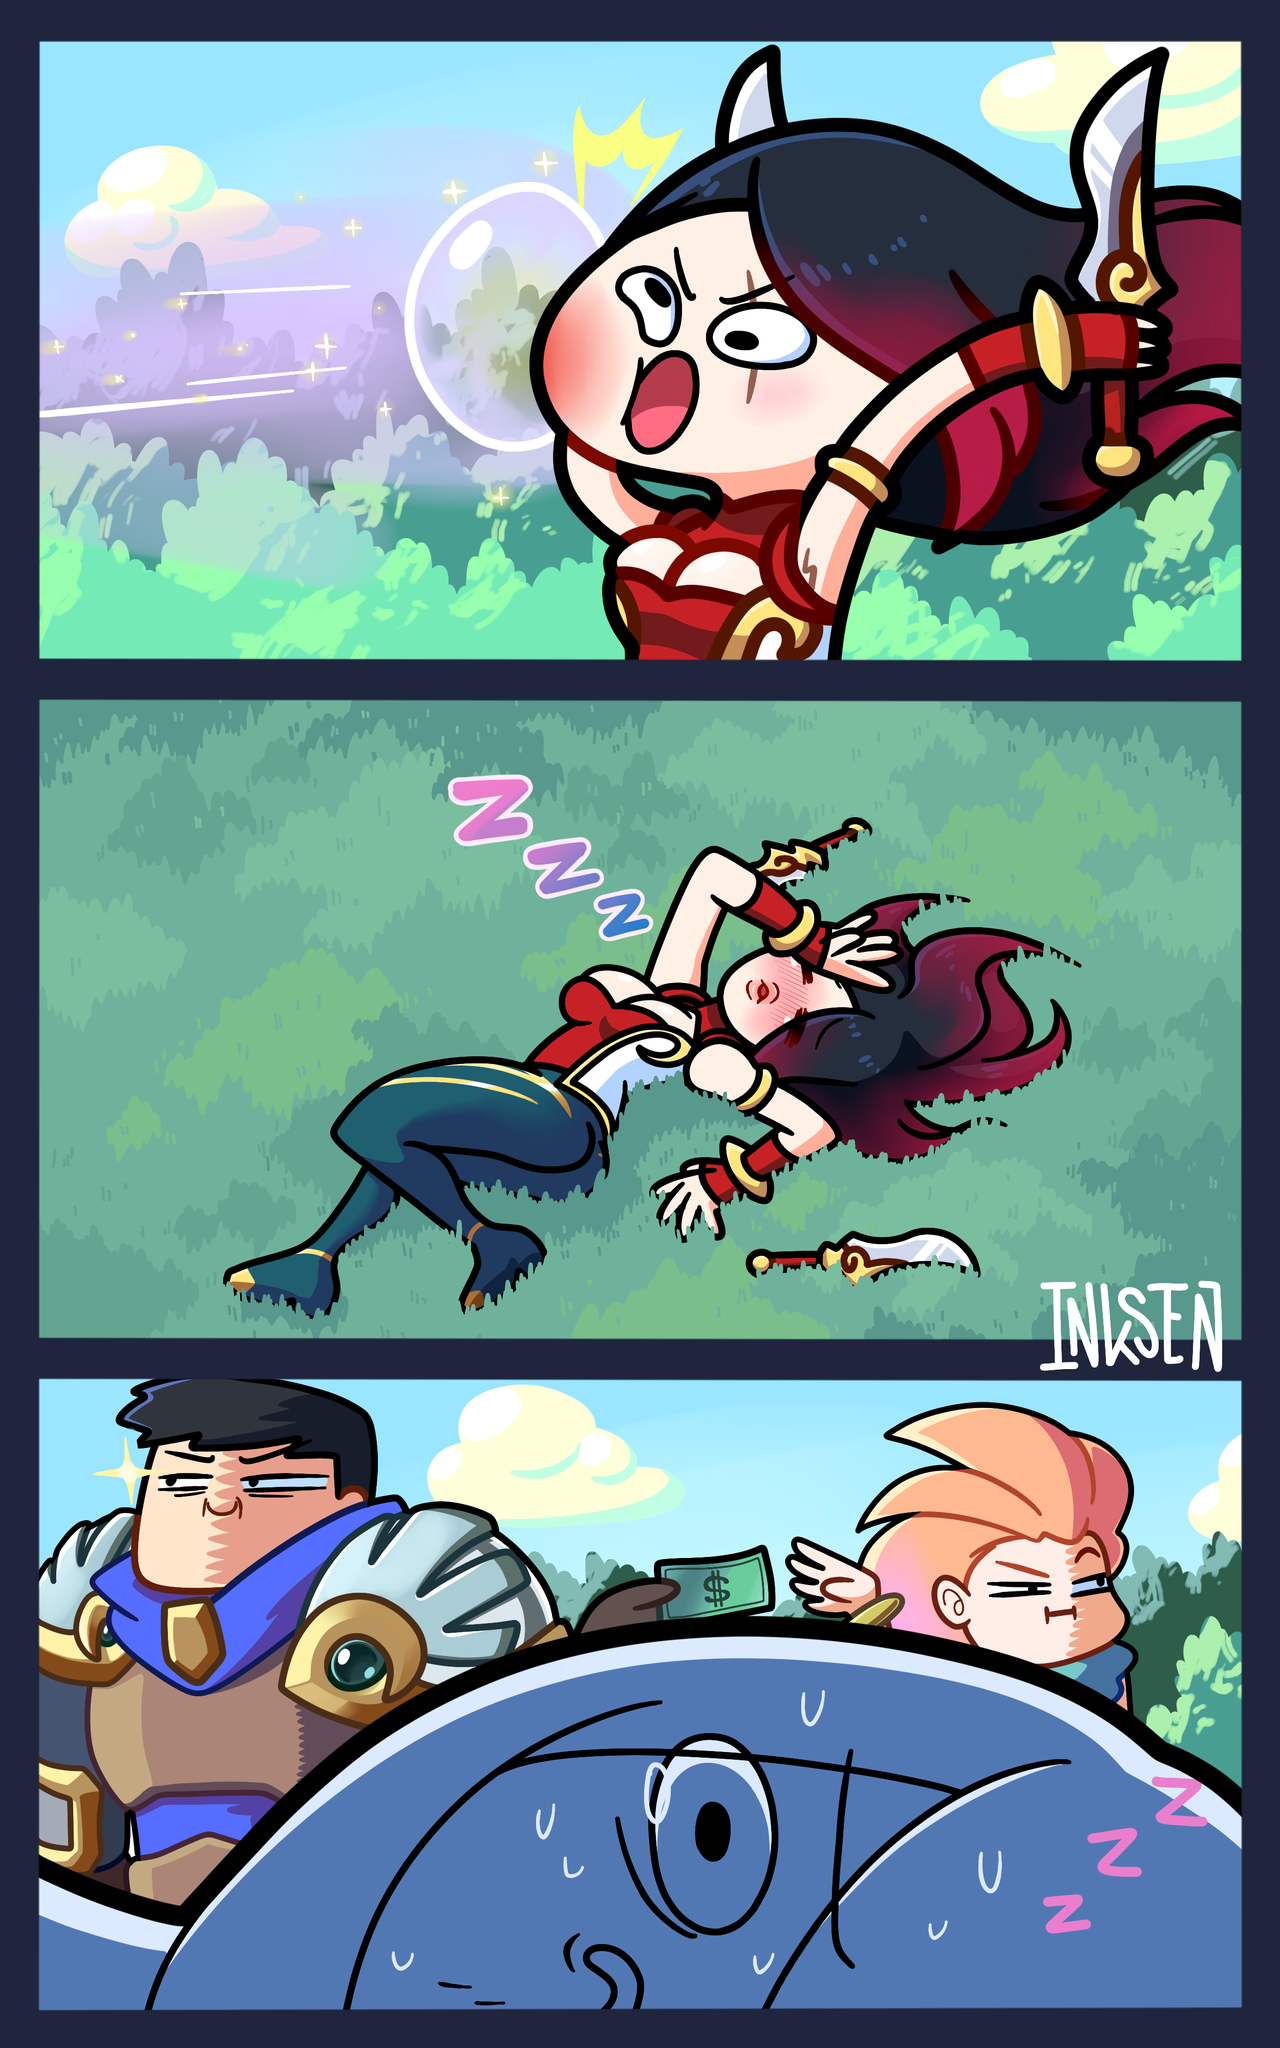 Pin By Kim Santos On League Of Legends Lol League Of Legends League Of Legends Comic League Of Legends